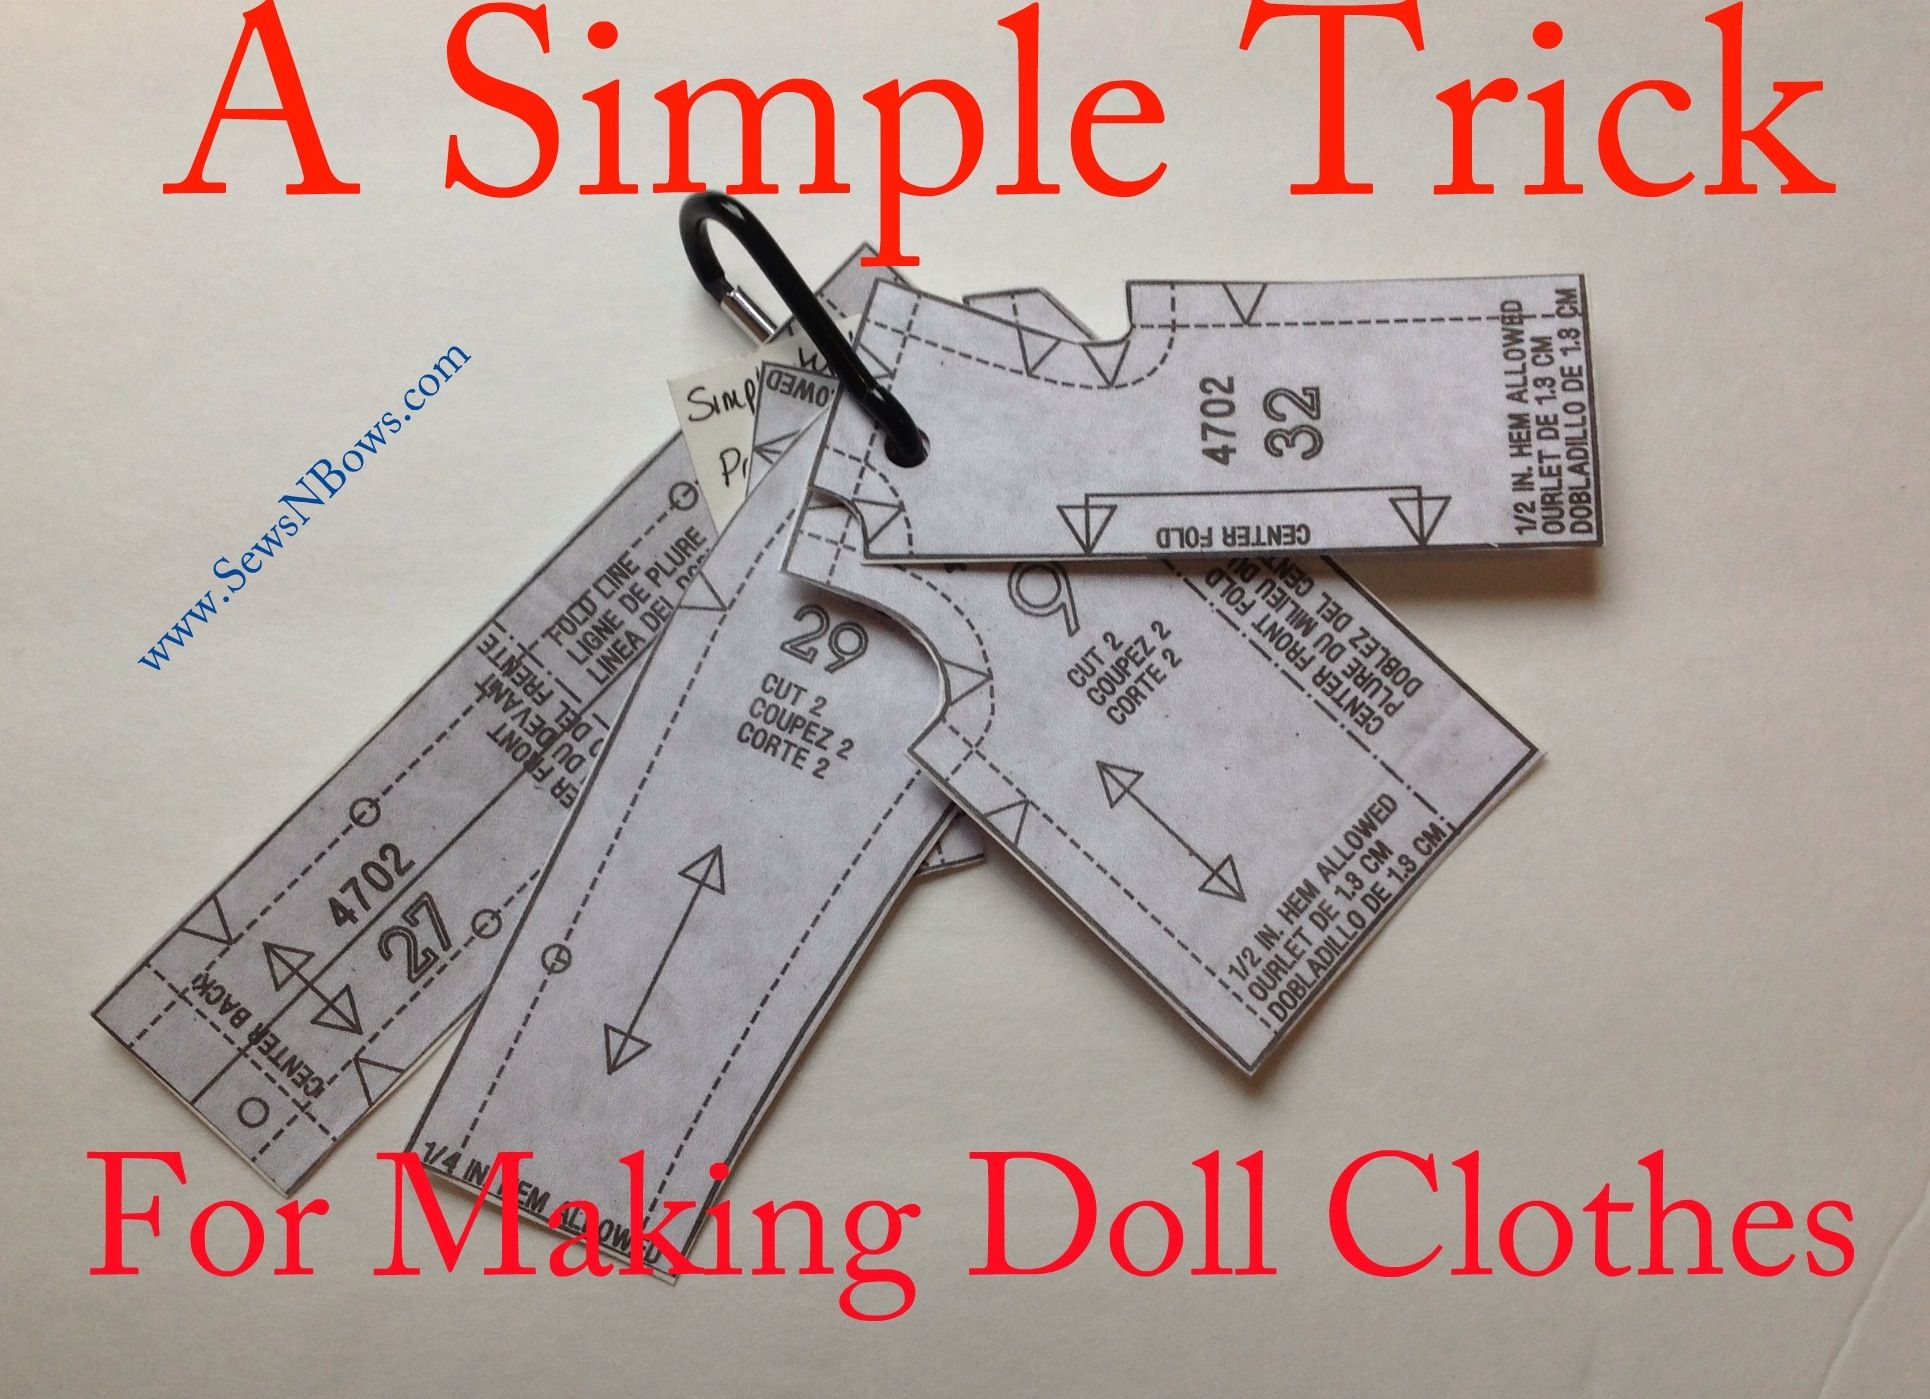 How To Transfer Doll Clothing Patterns | Puppen, Barbie und ...